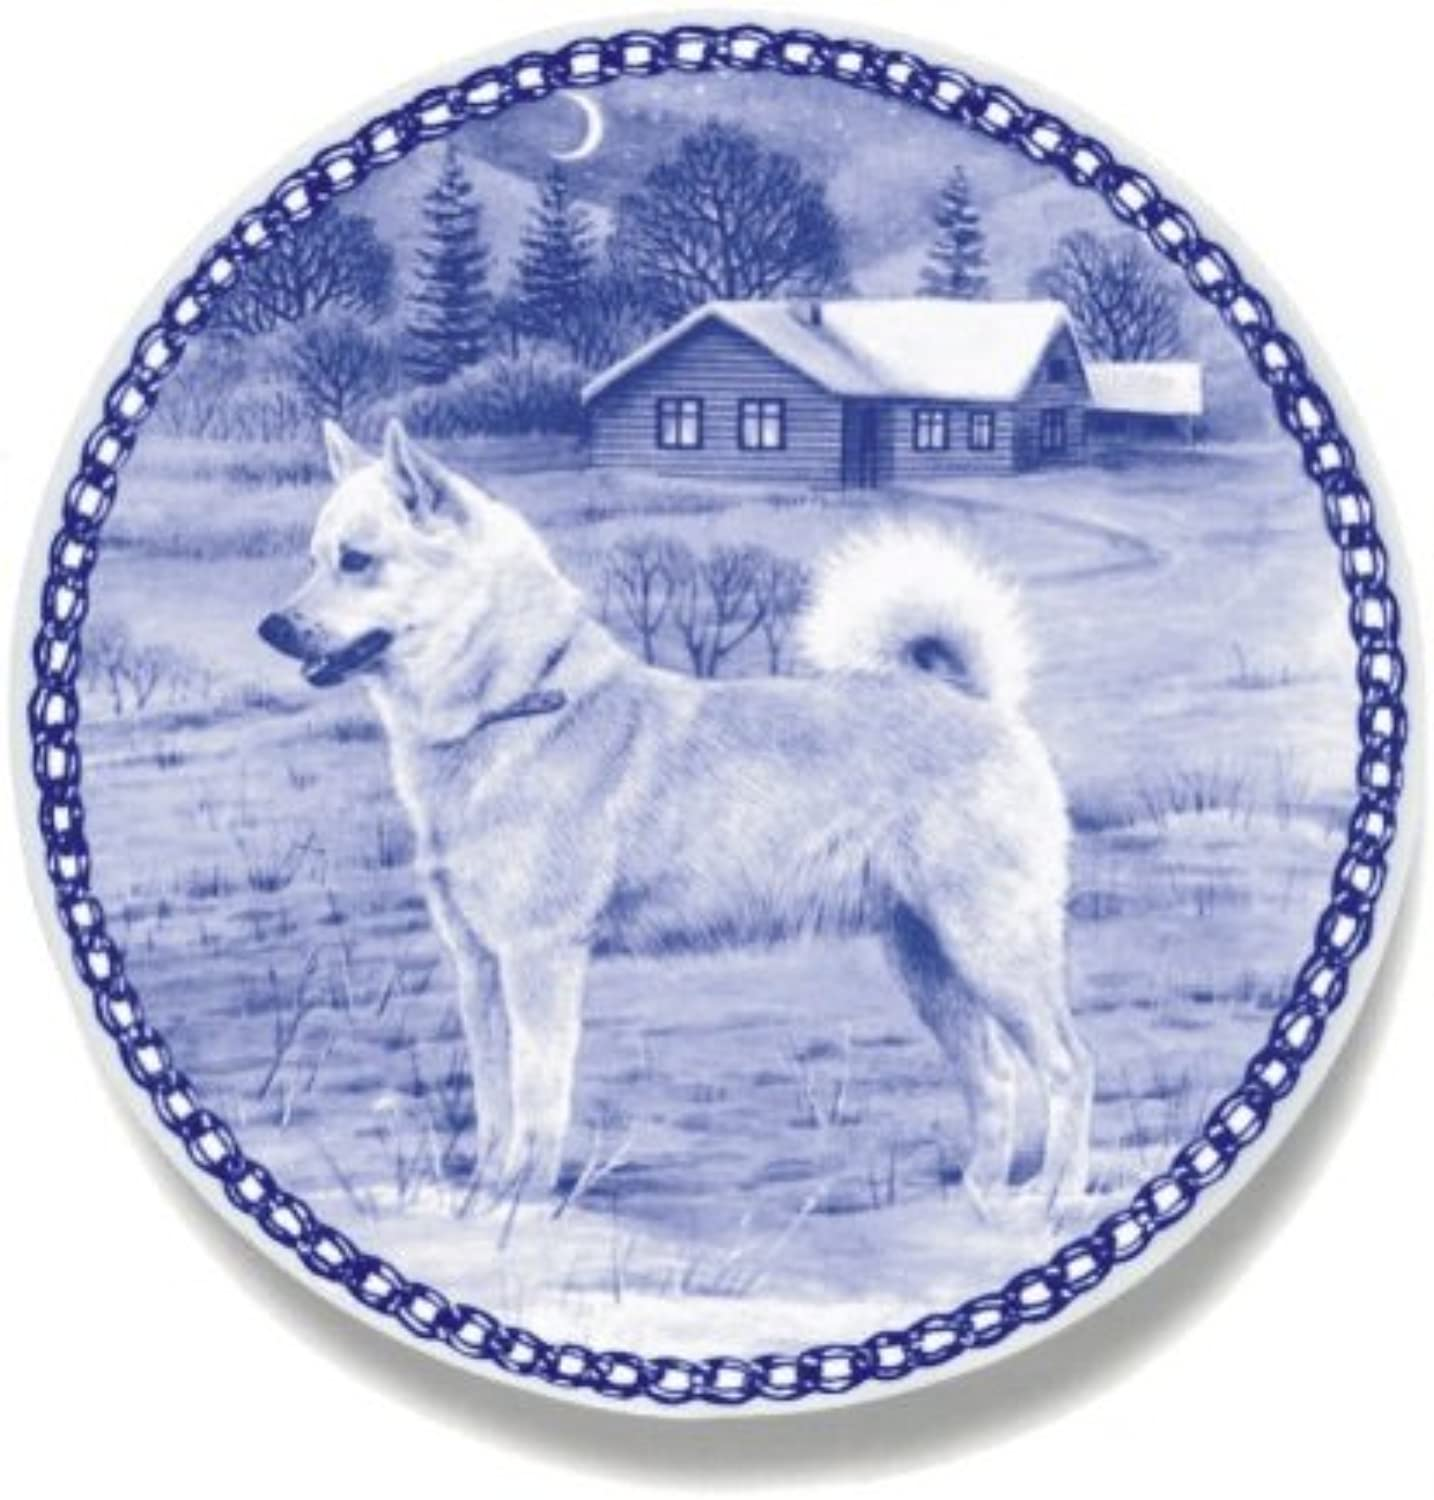 Norwegian Buhund Lekven Design Dog Plate 19.5 cm  7.61 inches Made in Denmark NEW with certificate of origin PLATE  7427